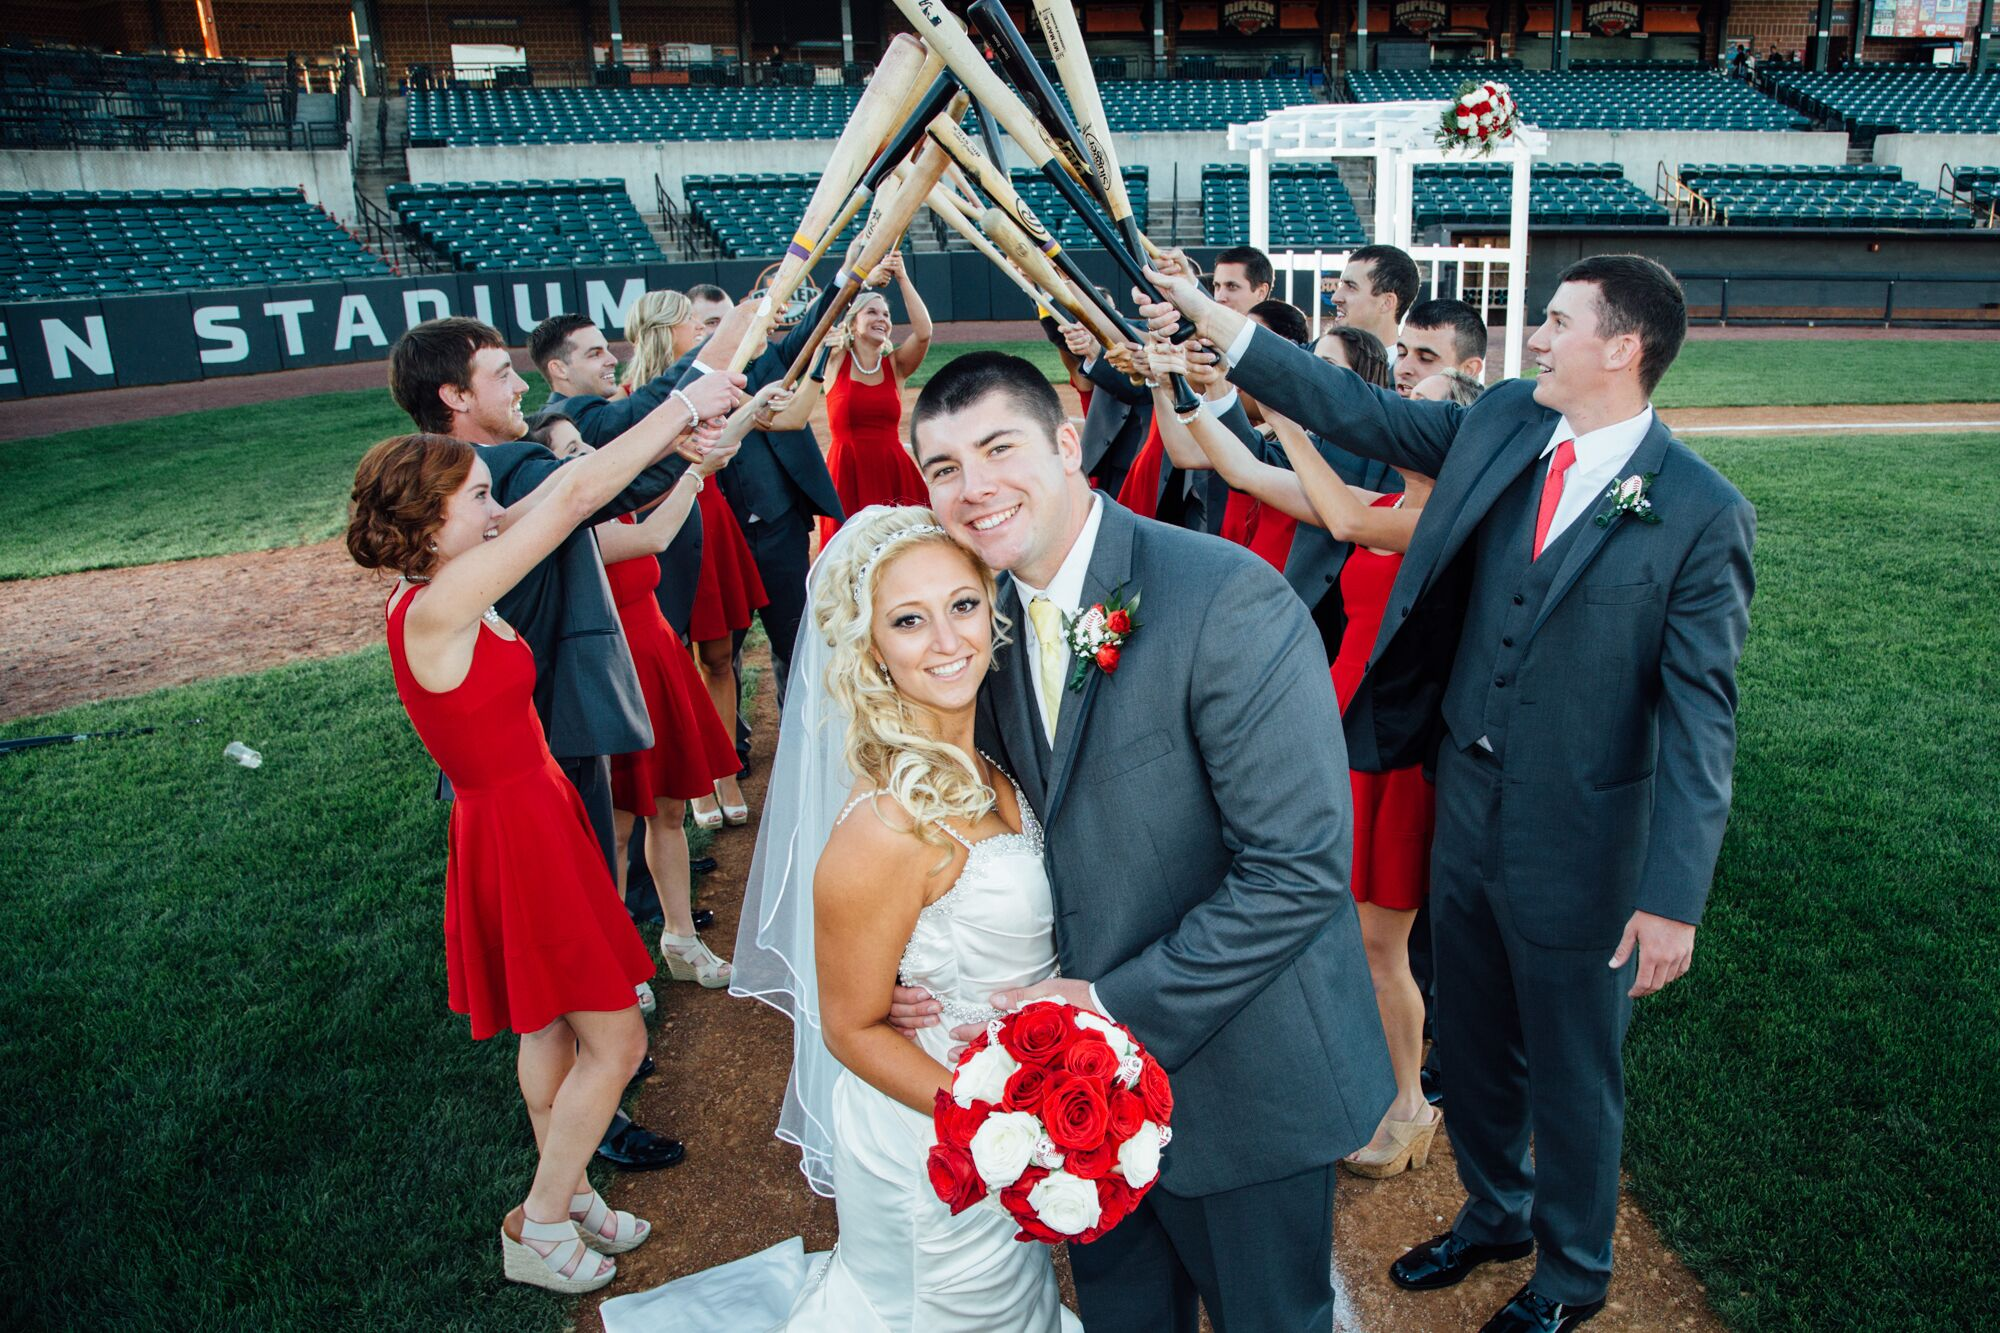 A Fun Baseball Themed Wedding At Ripken Stadium In